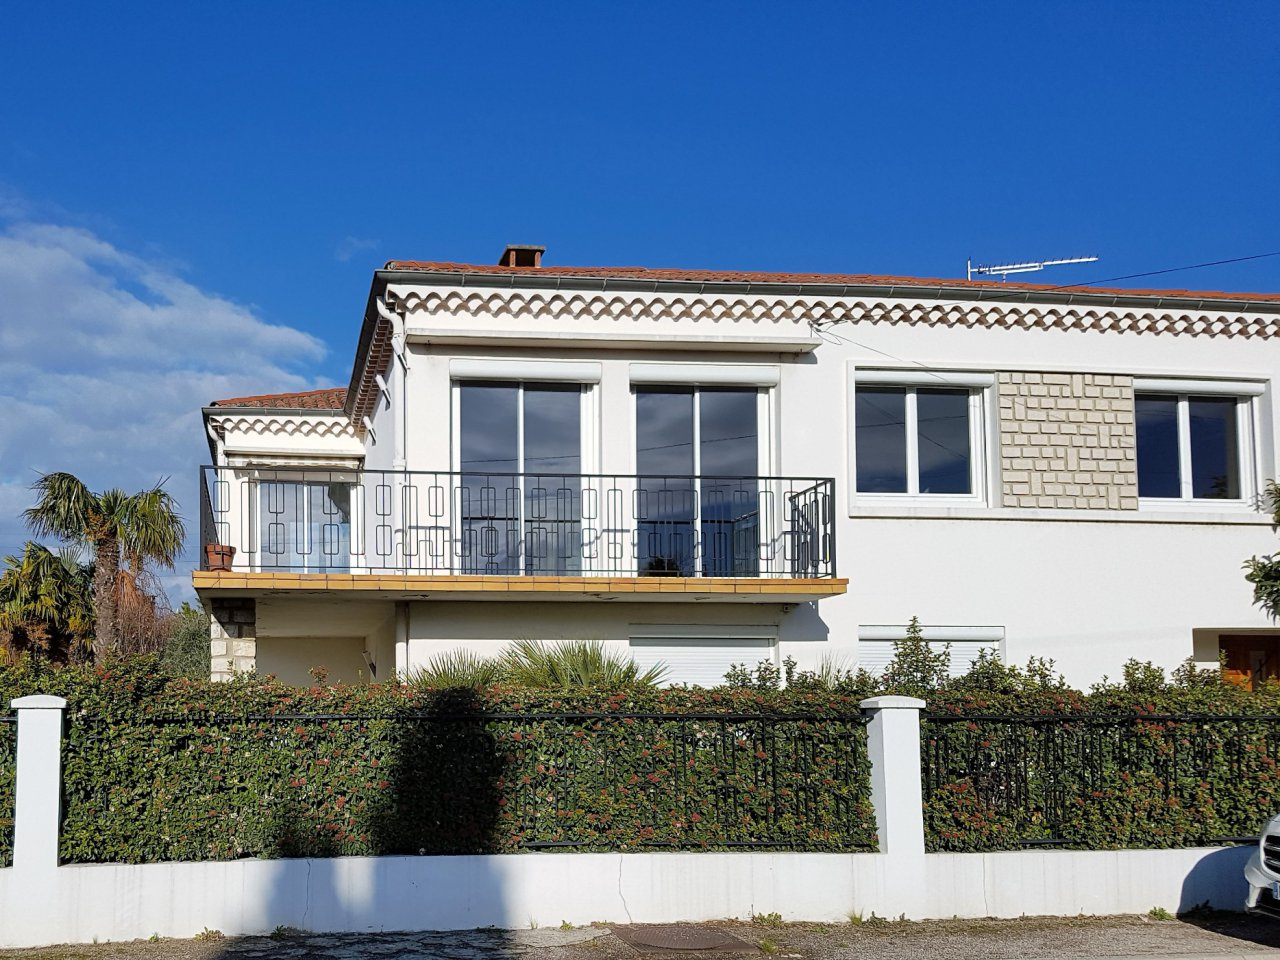 Agence immobili re mont limar for Agence immobiliere montelimar